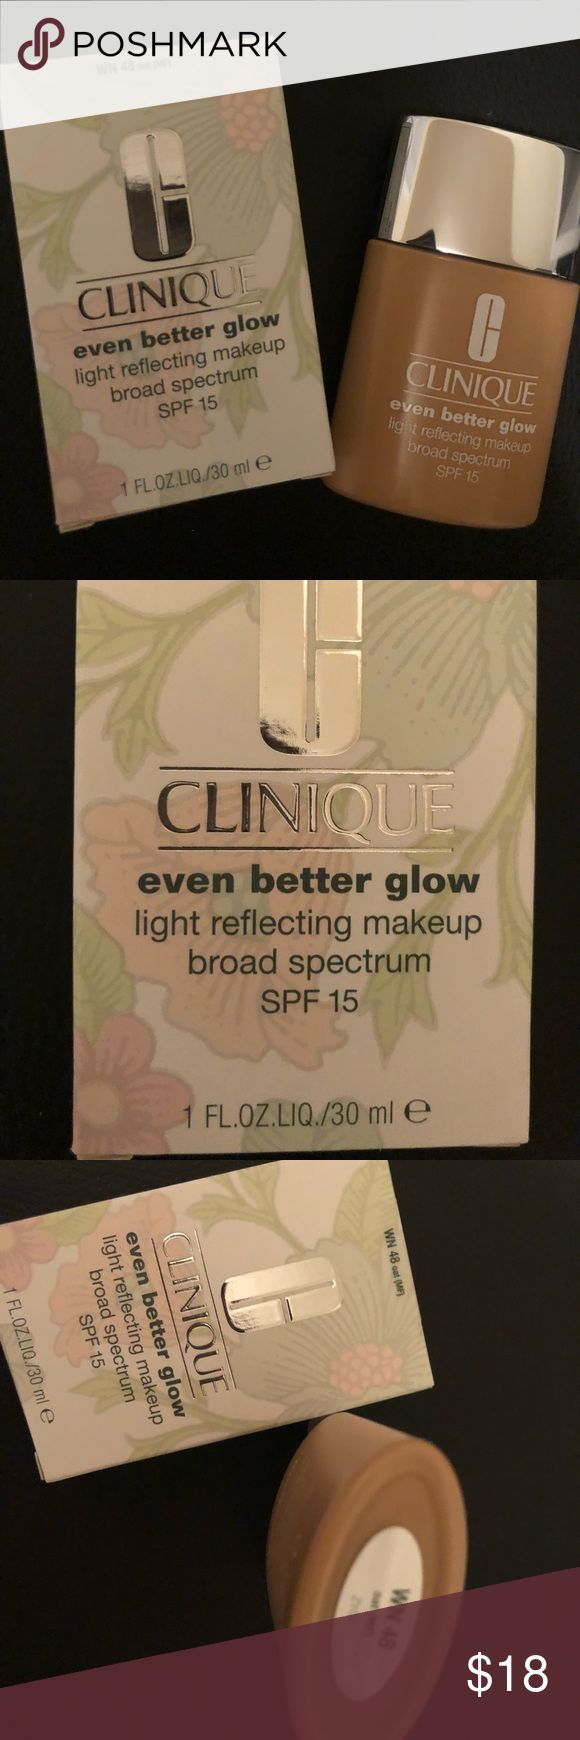 Even Better Glow WN 48 Oat (MF) Even Better Glow light reflecting makeup with SPF15 1Fl oz Color: Oat #48, warm neutral for medium fair skin Allergy Tested, 100% Fragrance Free, Sheer to Moderate coverage with a luminous finish. Oil Free Clinique Other